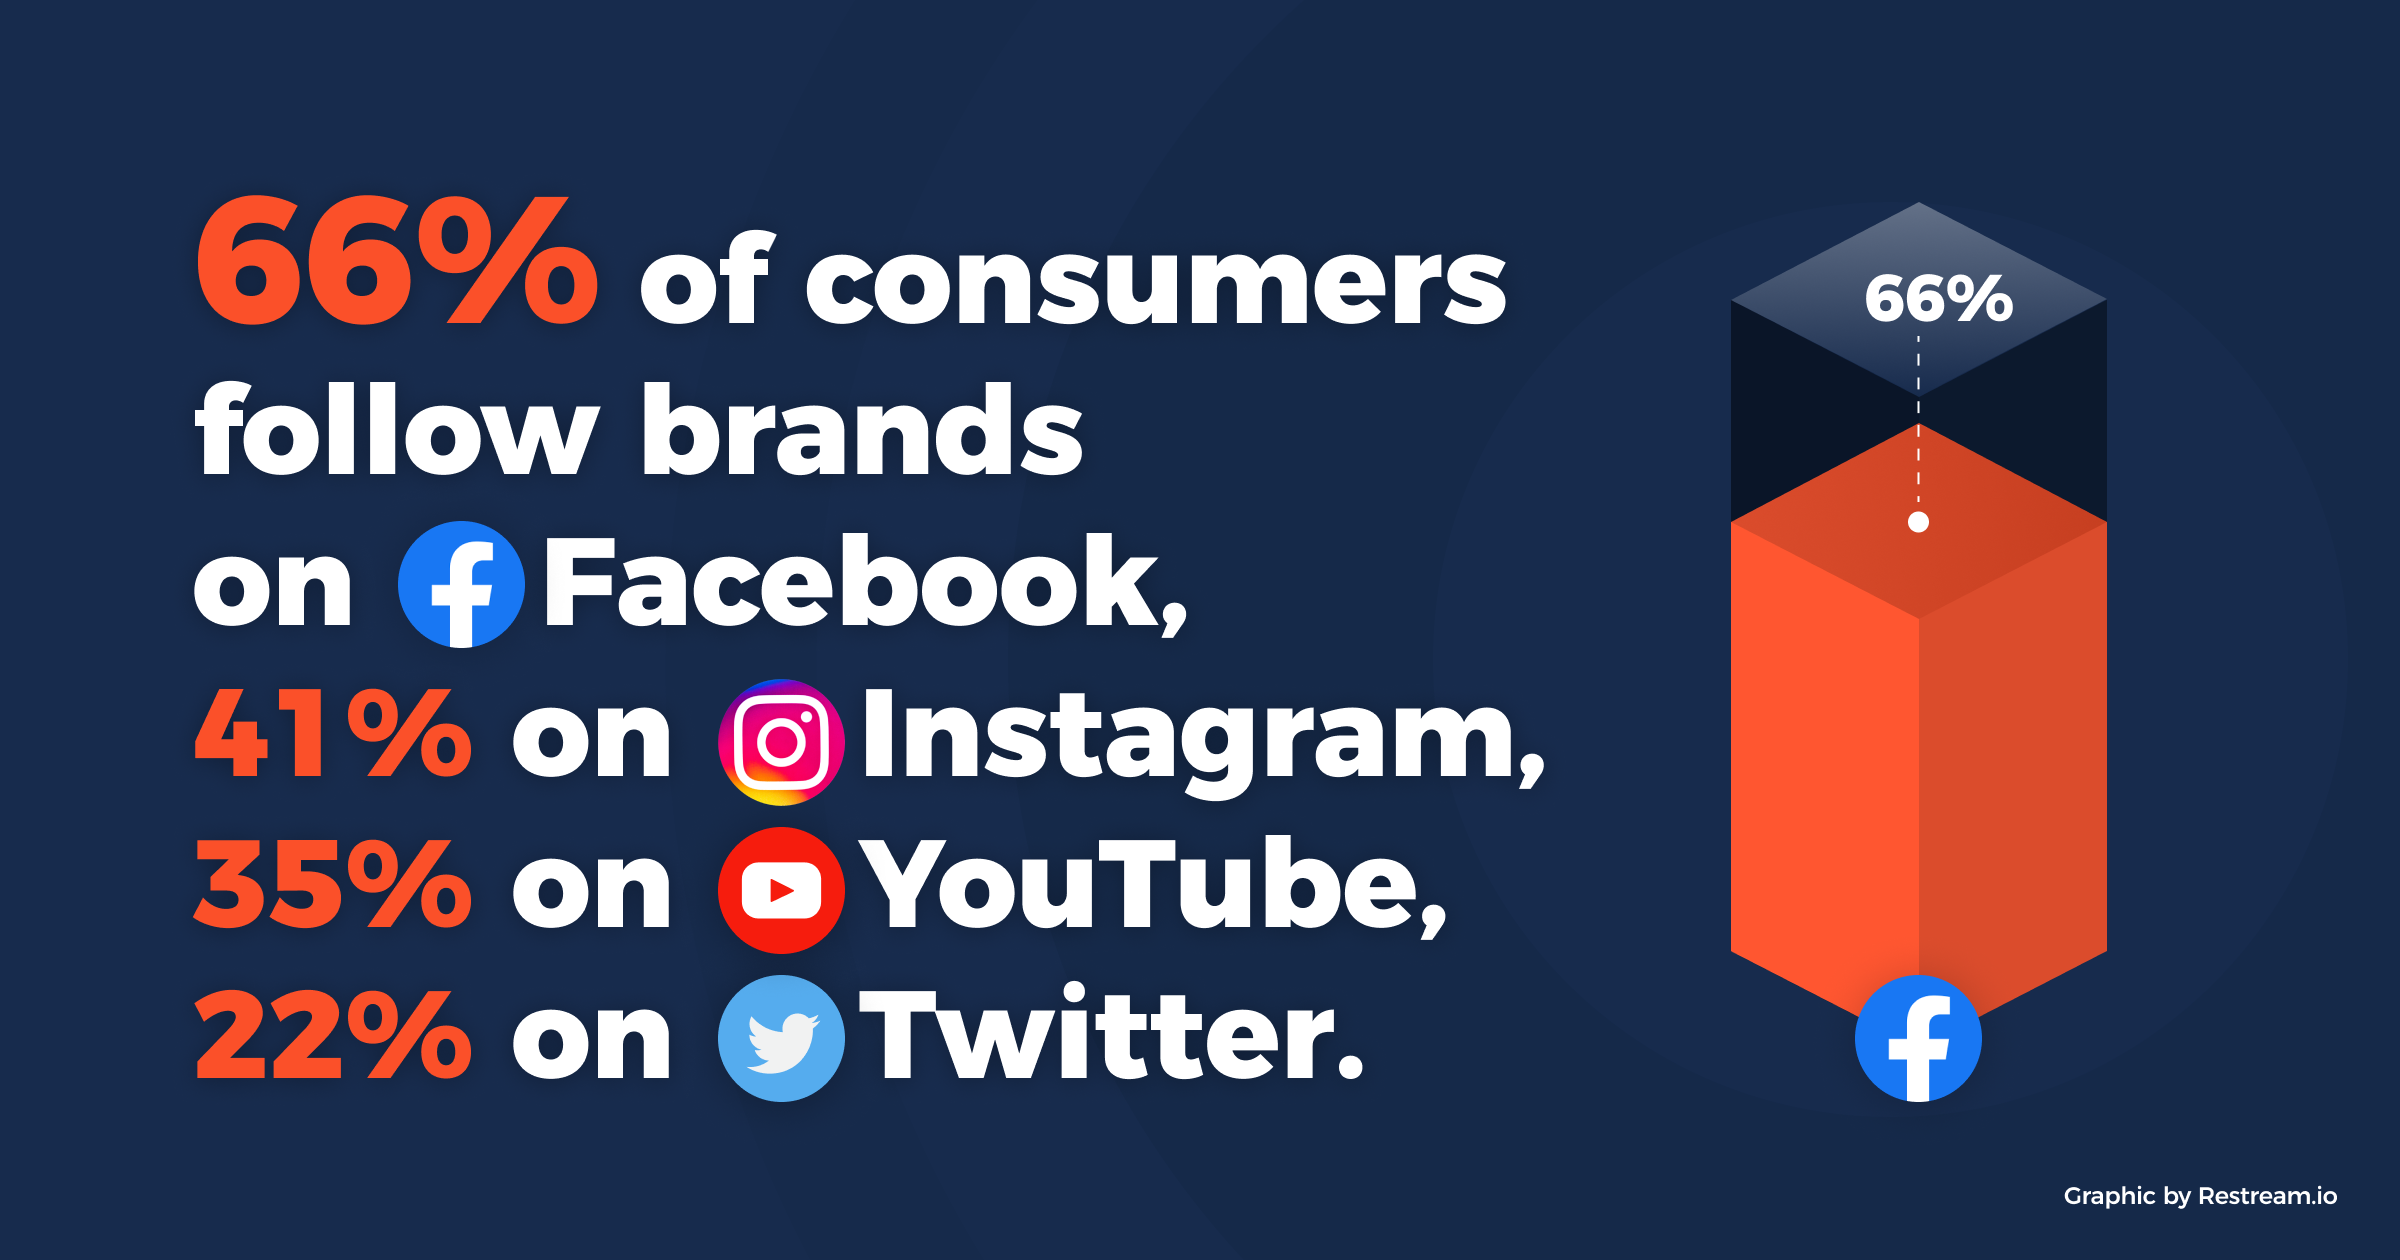 66% of consumers follow brands on Facebook, 41% on Instagram, 35% on YouTube, and 22% on Twitter